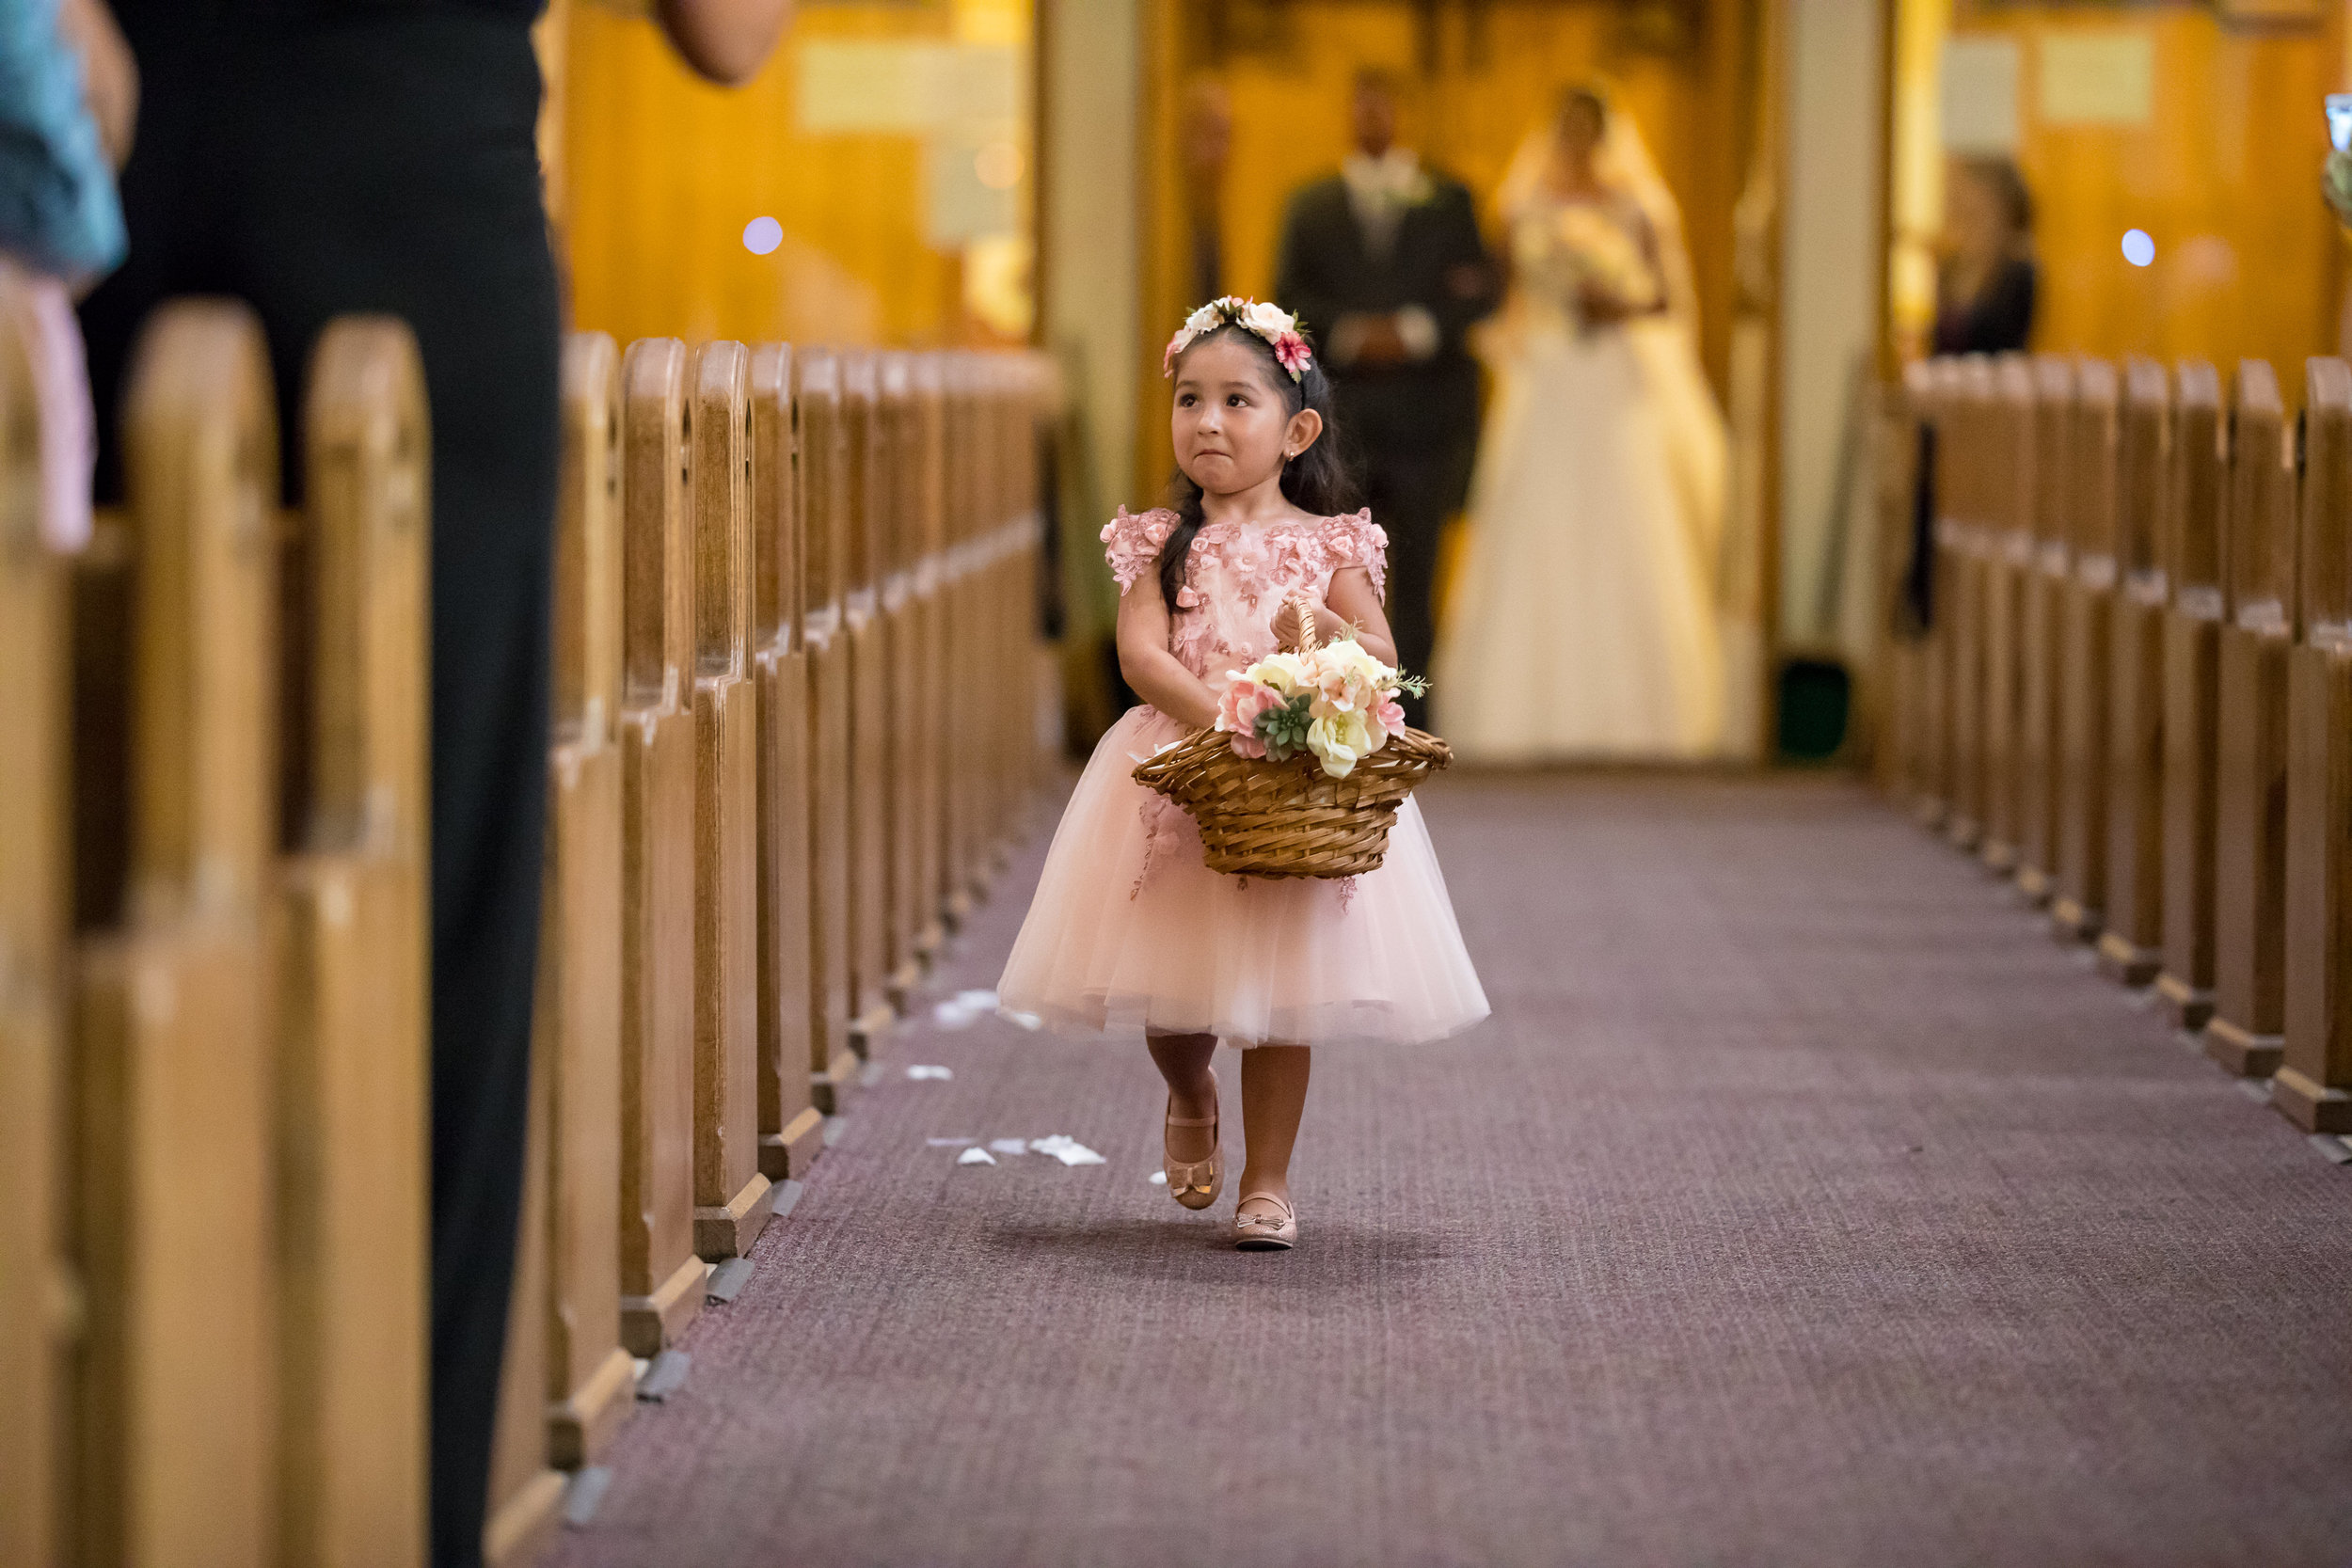 Perfectly Planned Moments Eugene Oregon Wedding Planner Church Flower Girl.jpg